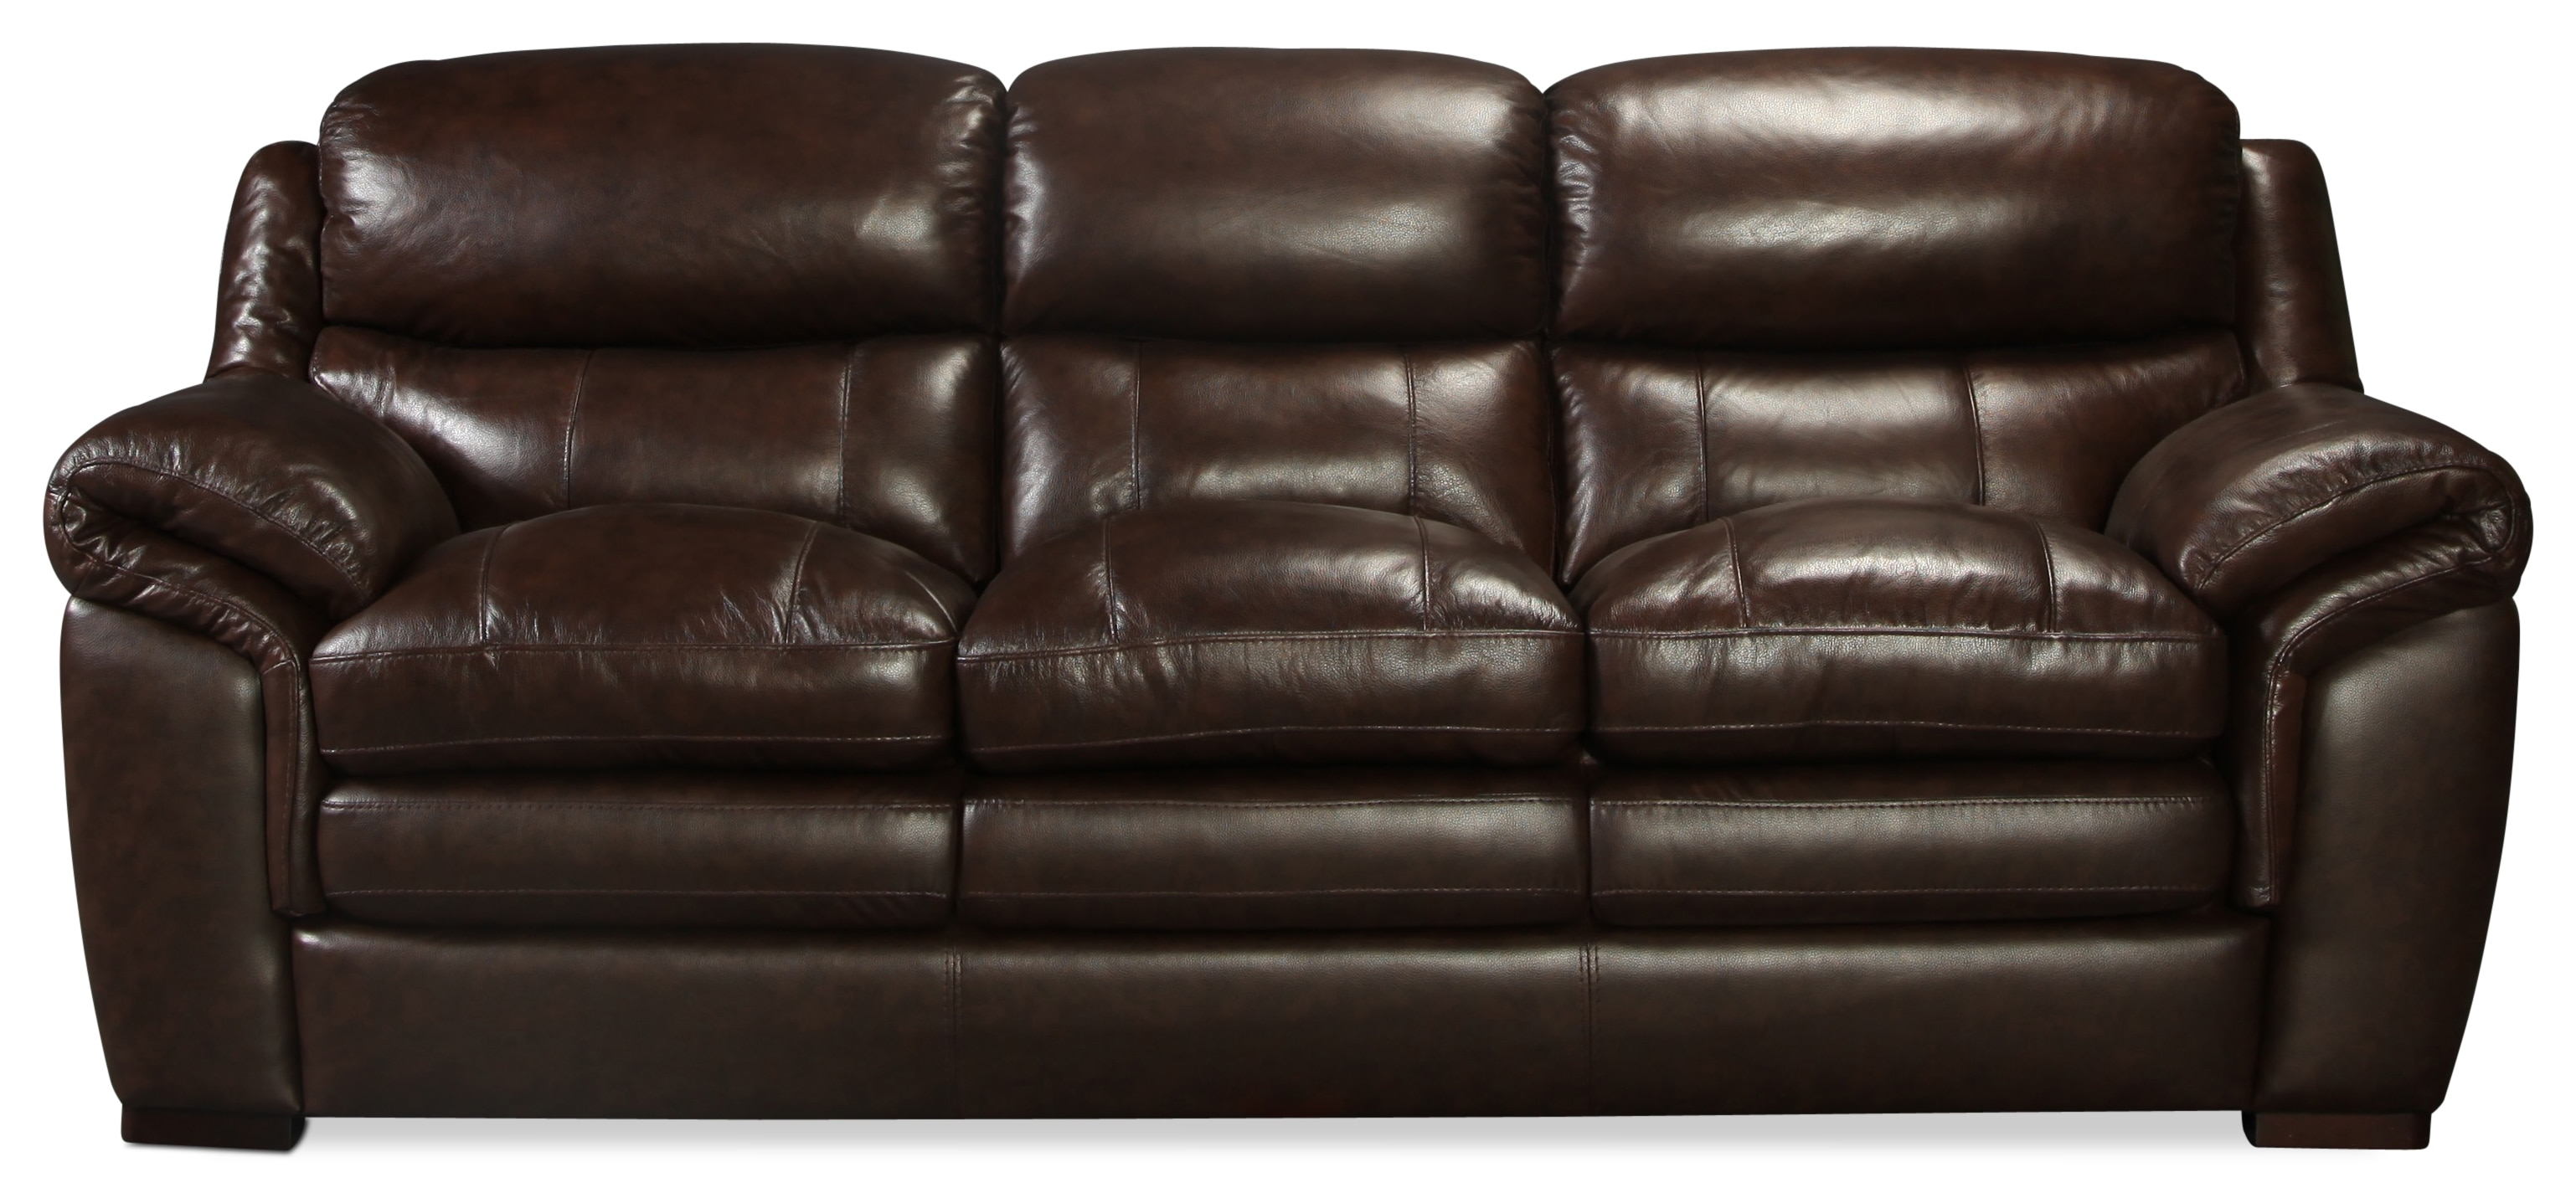 Rowan Leather Sofa